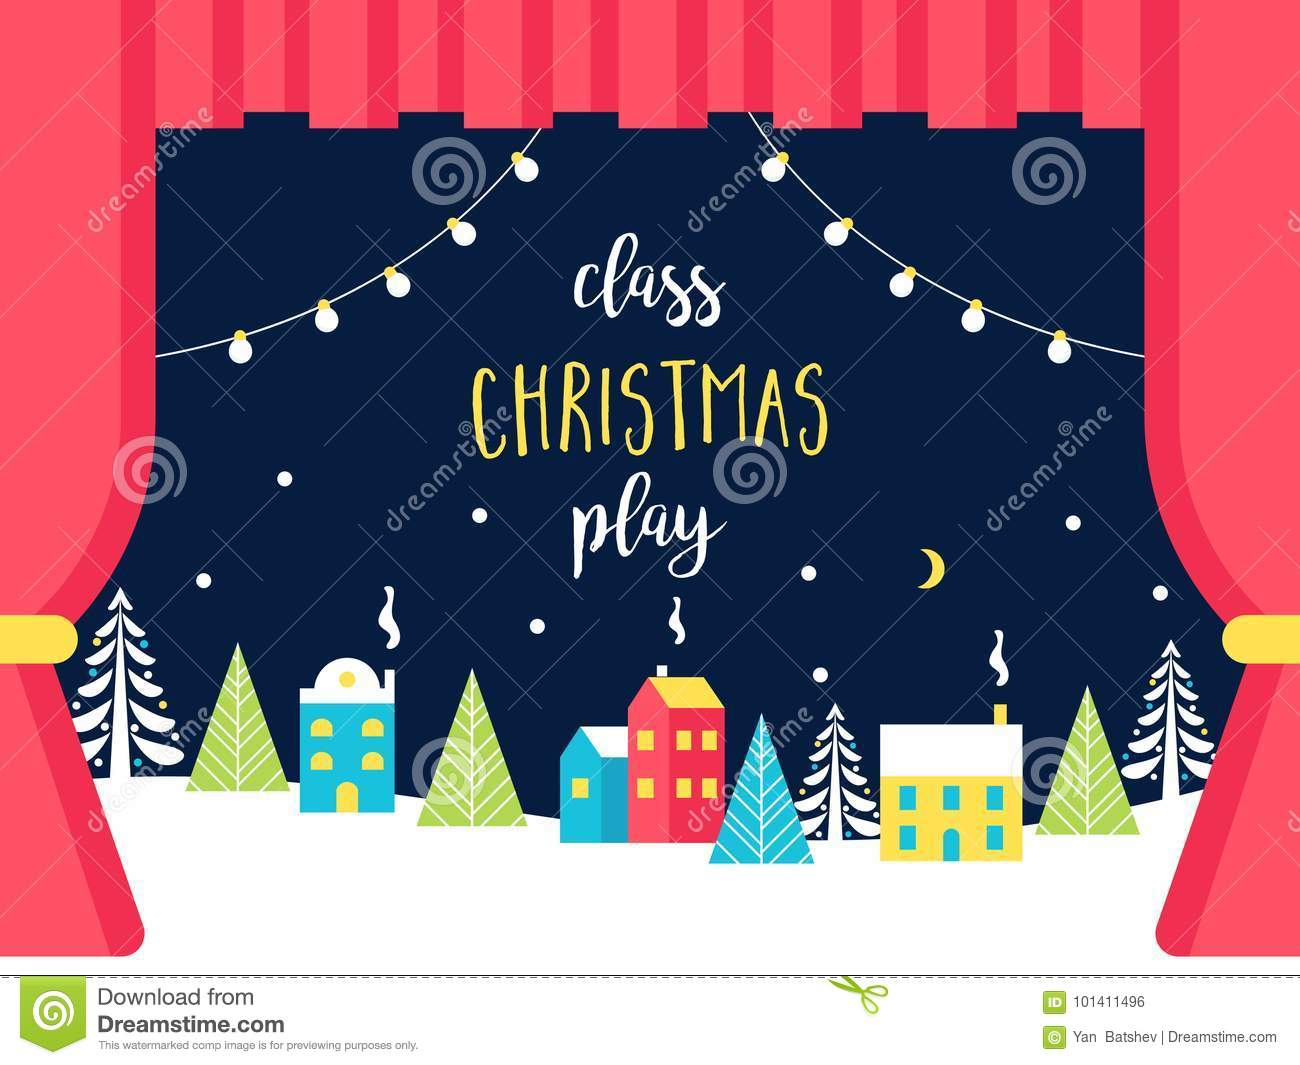 school or theatre stage decorations for christmas or new year play snowy winter wonderland and